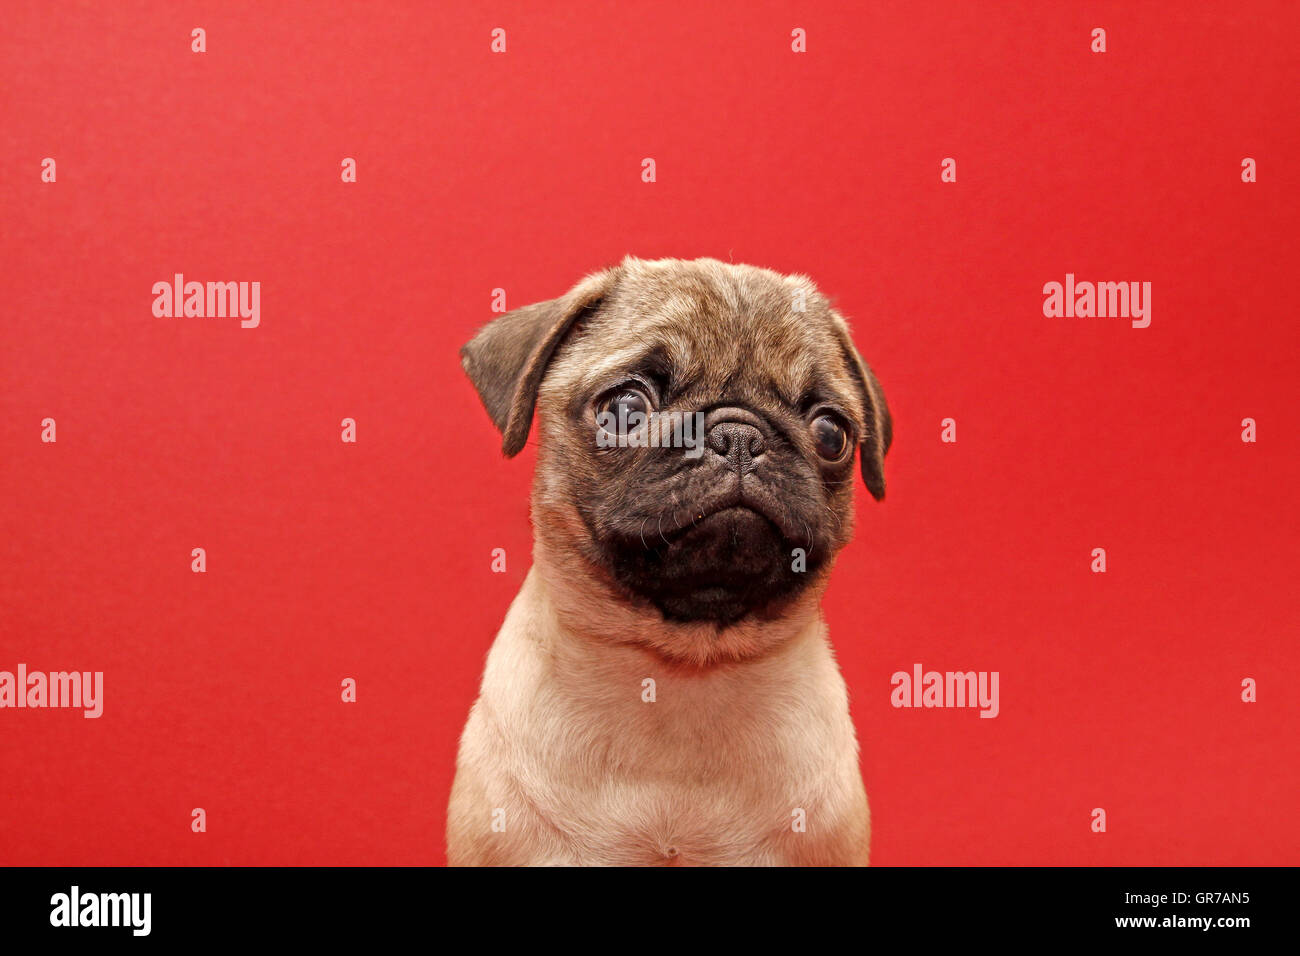 Young 10 Weeks Old Pug - Stock Image